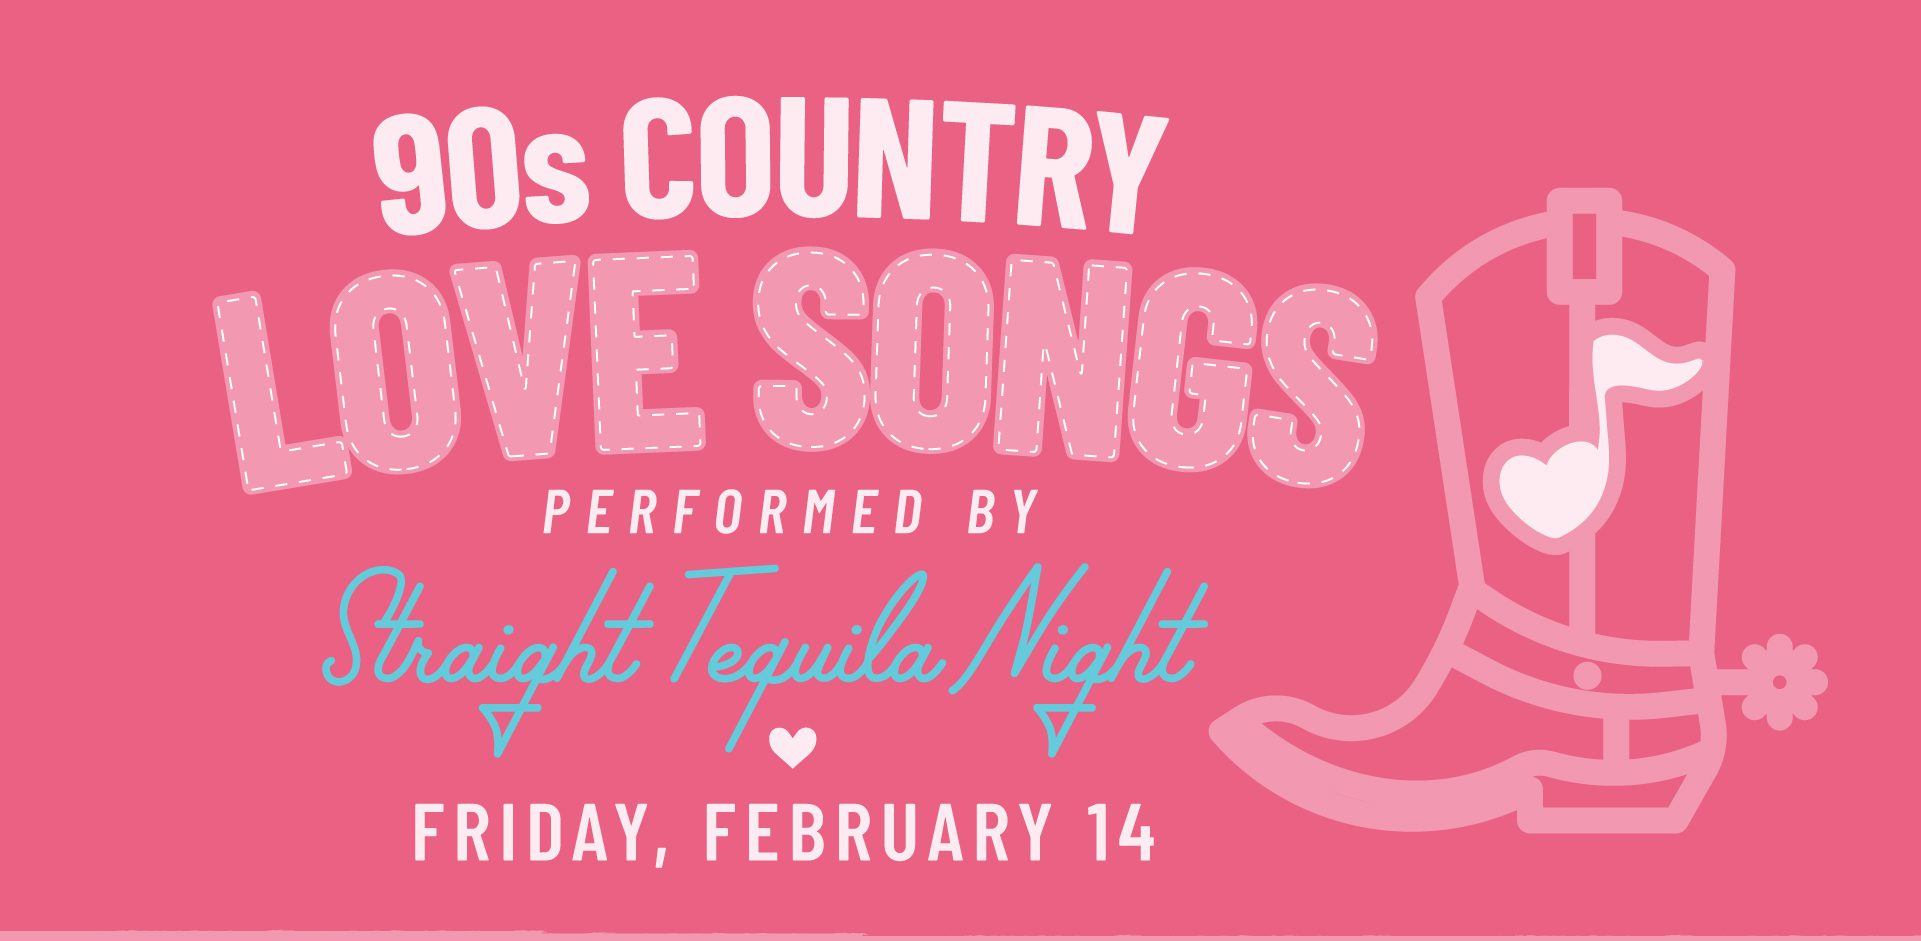 Promo image of Sweet Country Lovin' by Straight Tequila Night